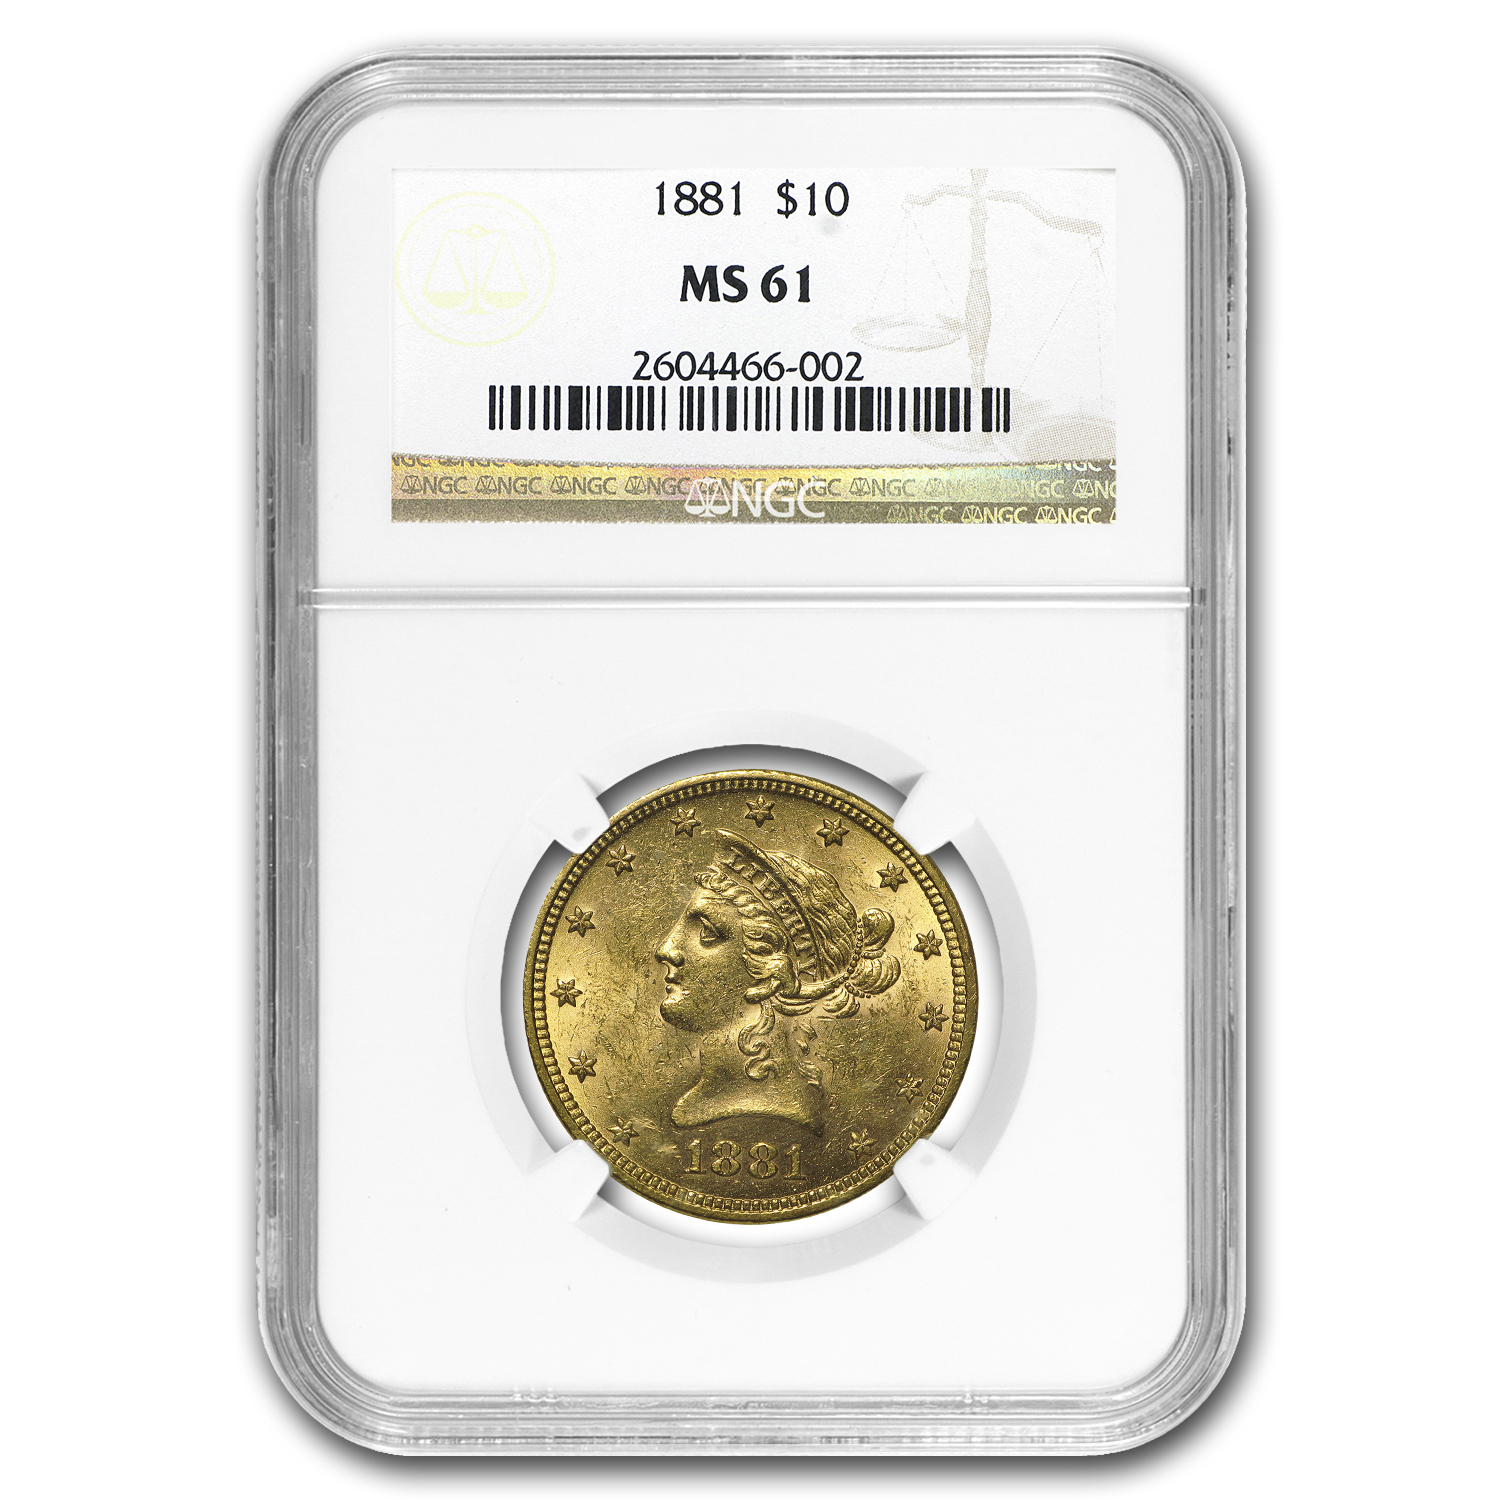 1881 $10 Liberty Gold Eagle MS-61 NGC